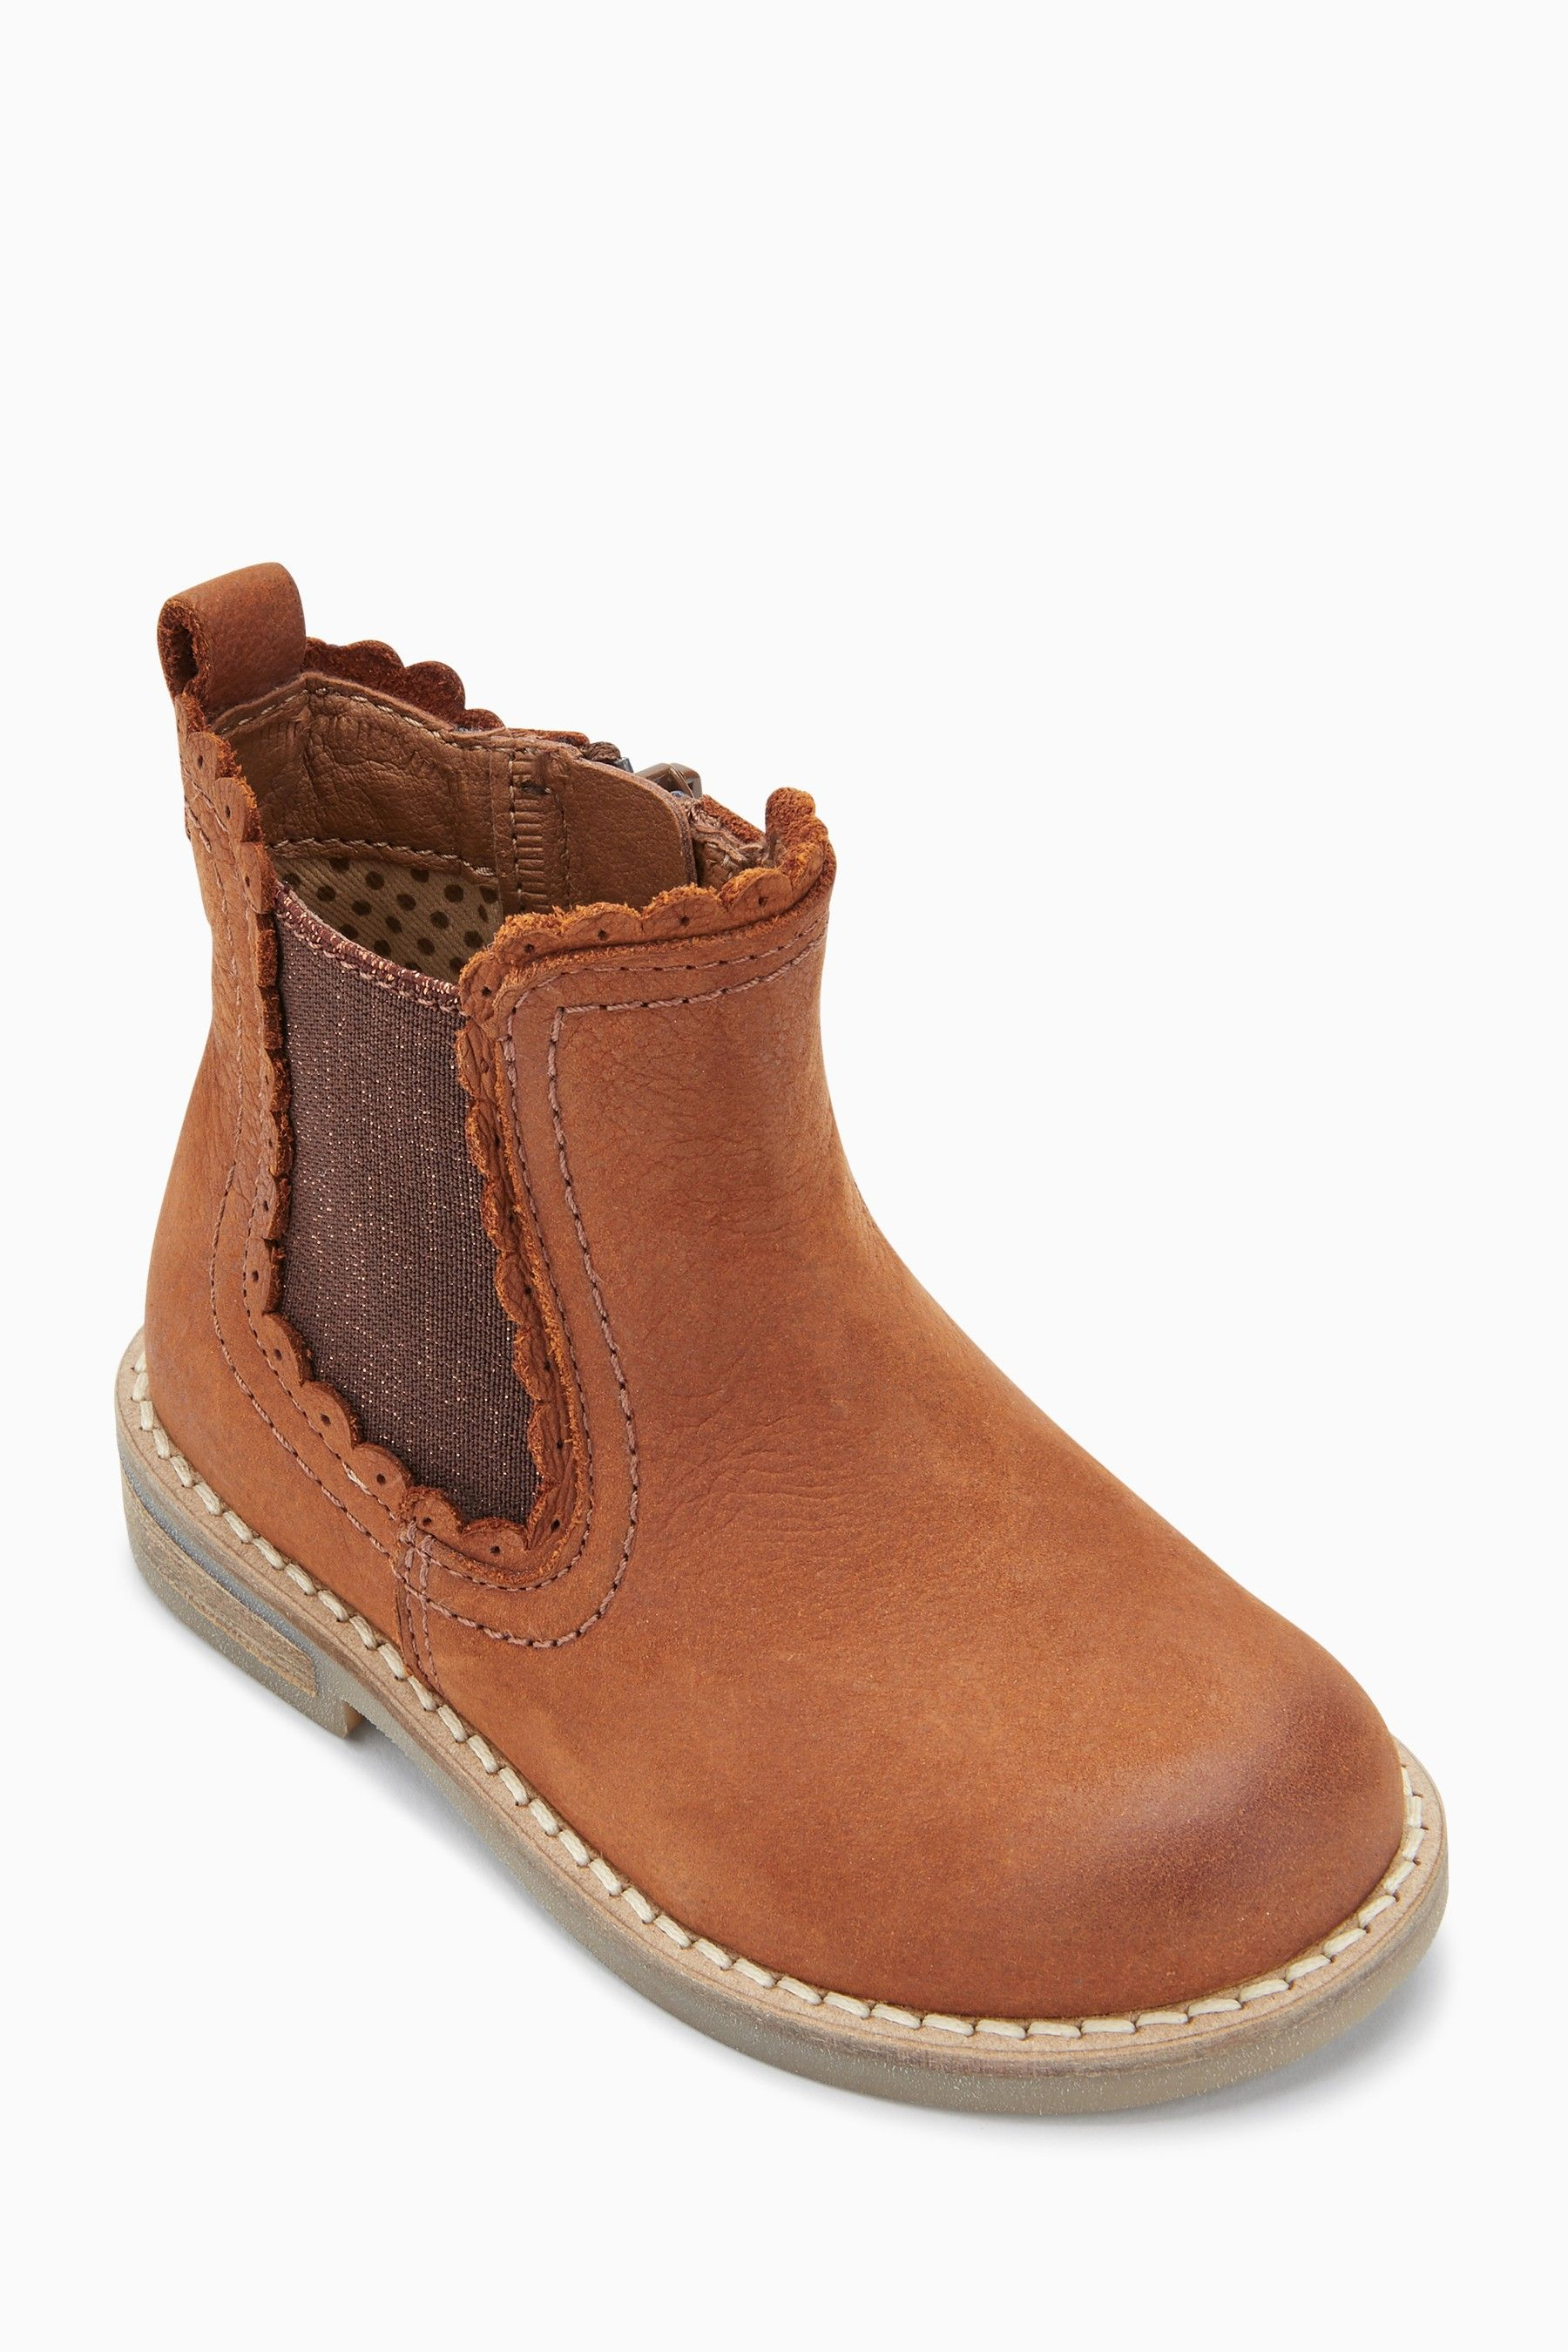 Girls Next Tan Chelsea Boots (Younger) Brown Toddler